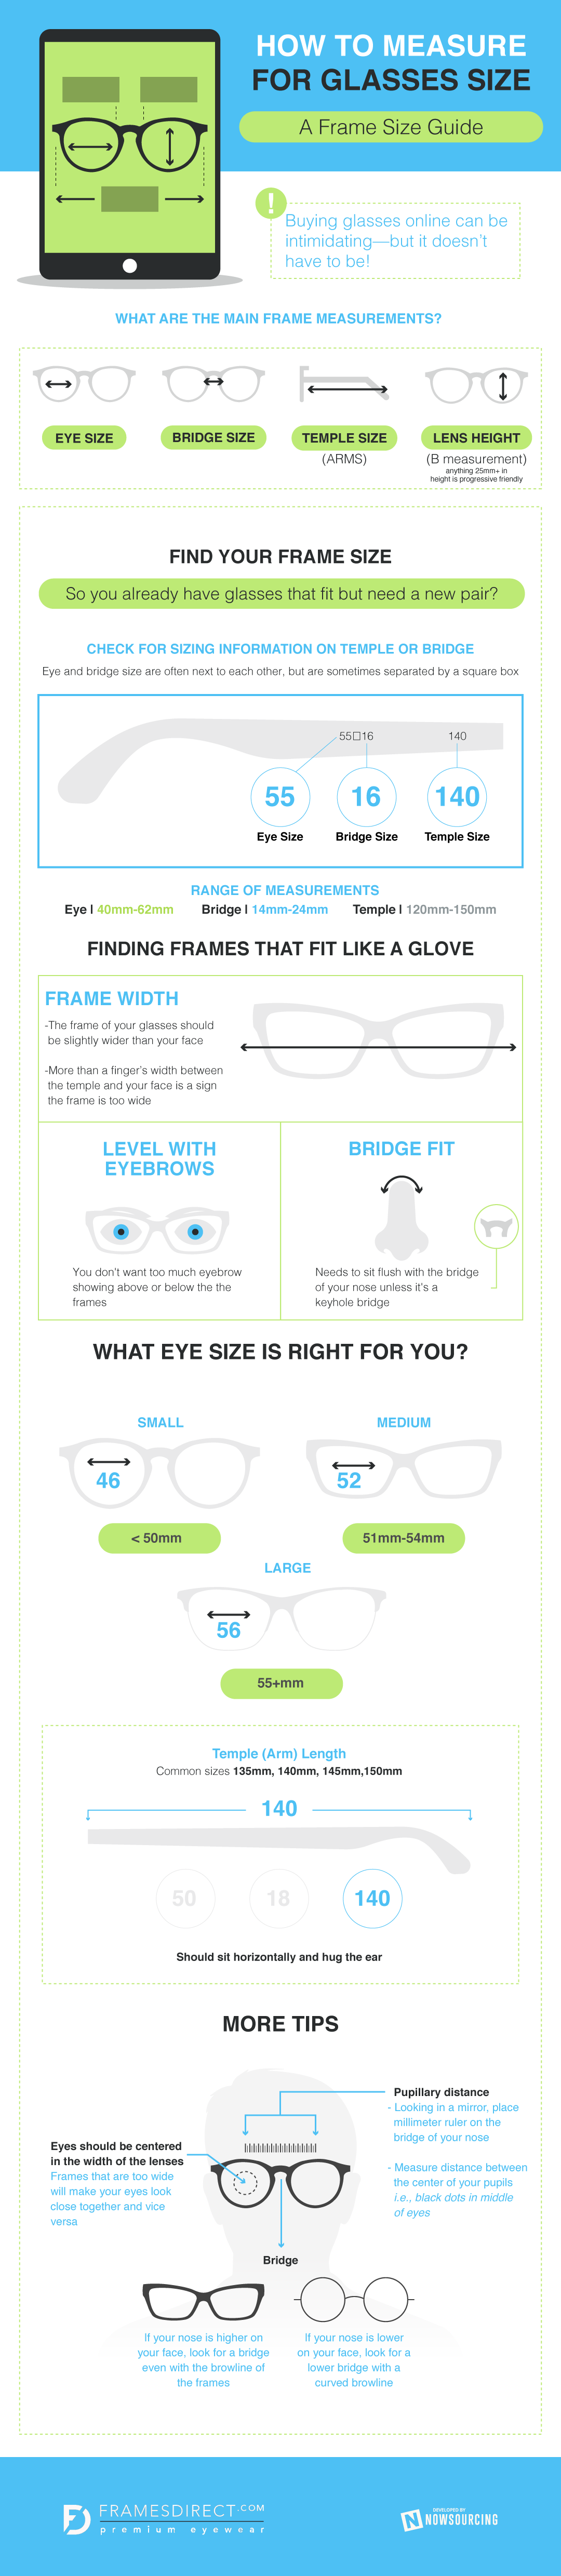 Measure Glasses Size Infographic